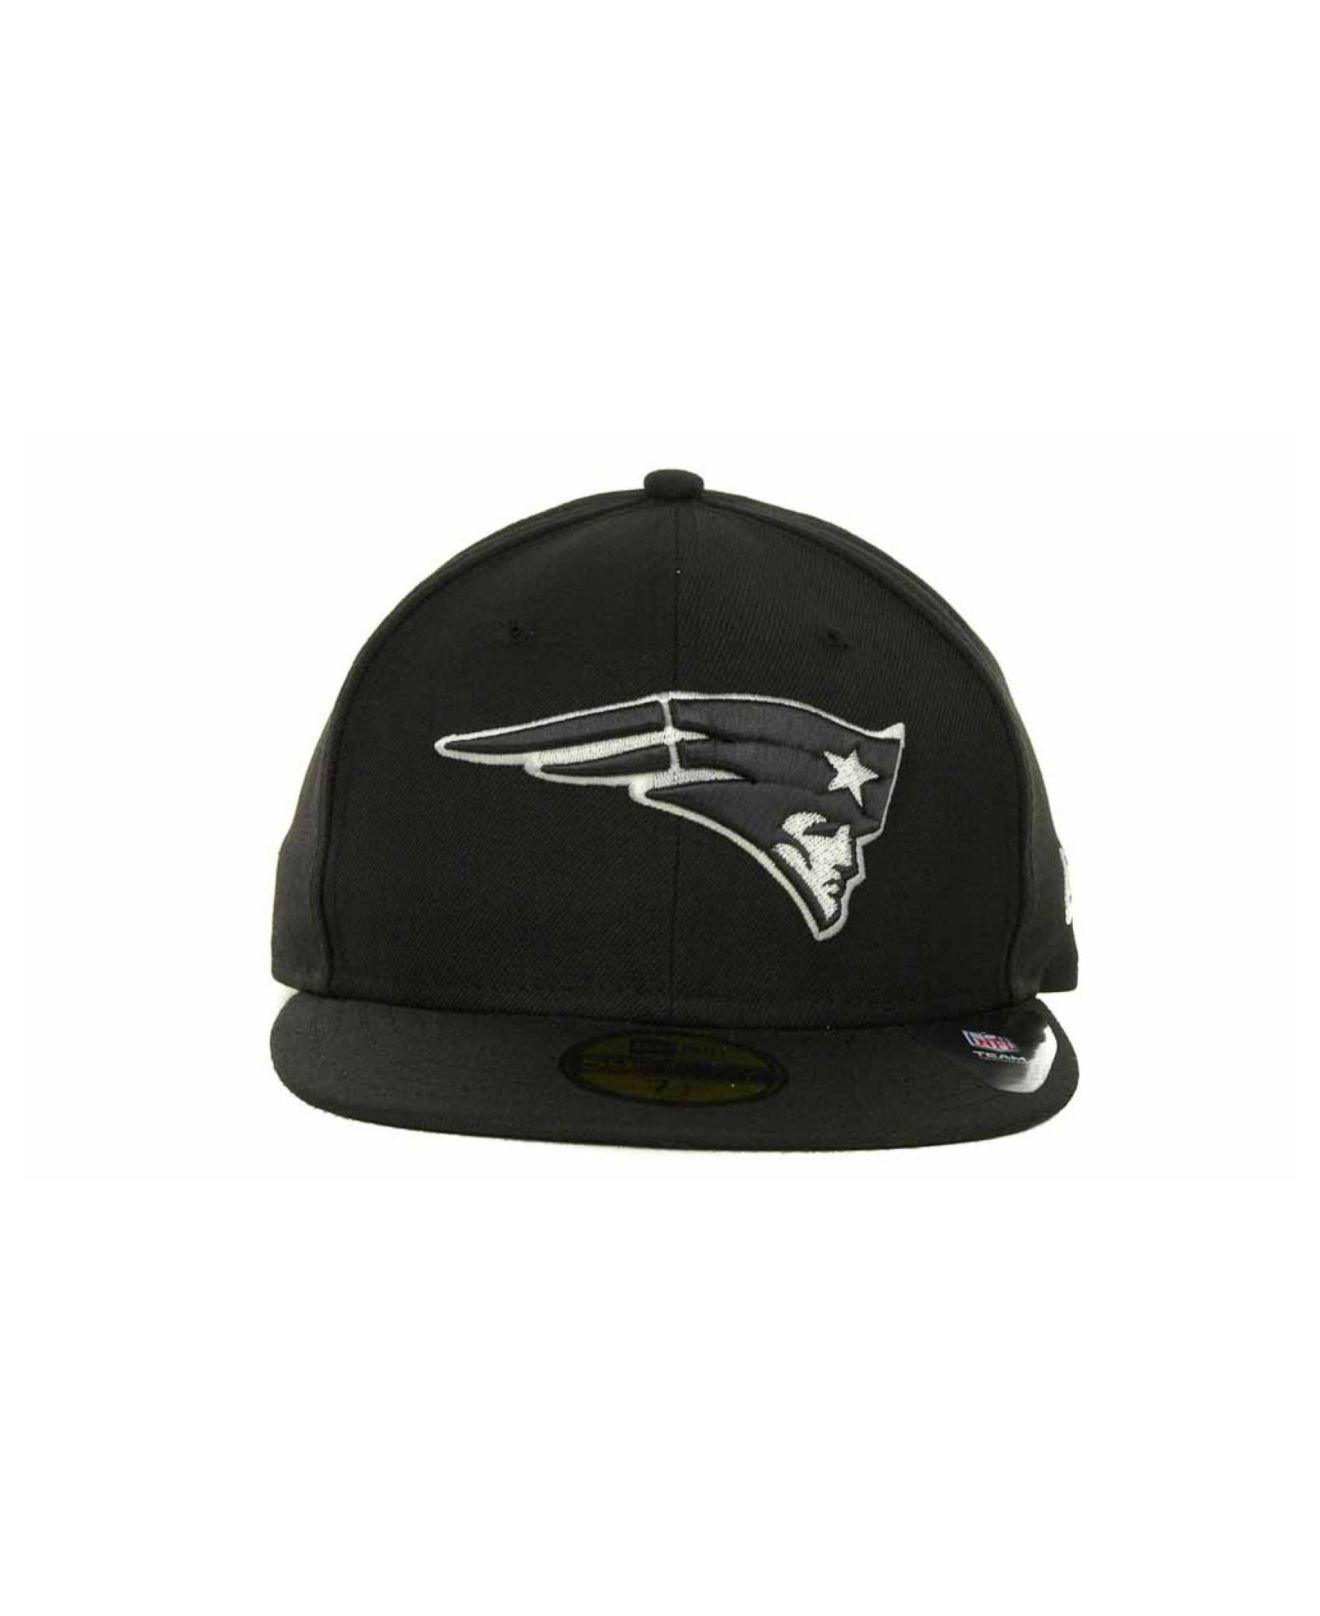 Lyst - Ktz New England Patriots 59fifty Cap in Black for Men 0441e9150